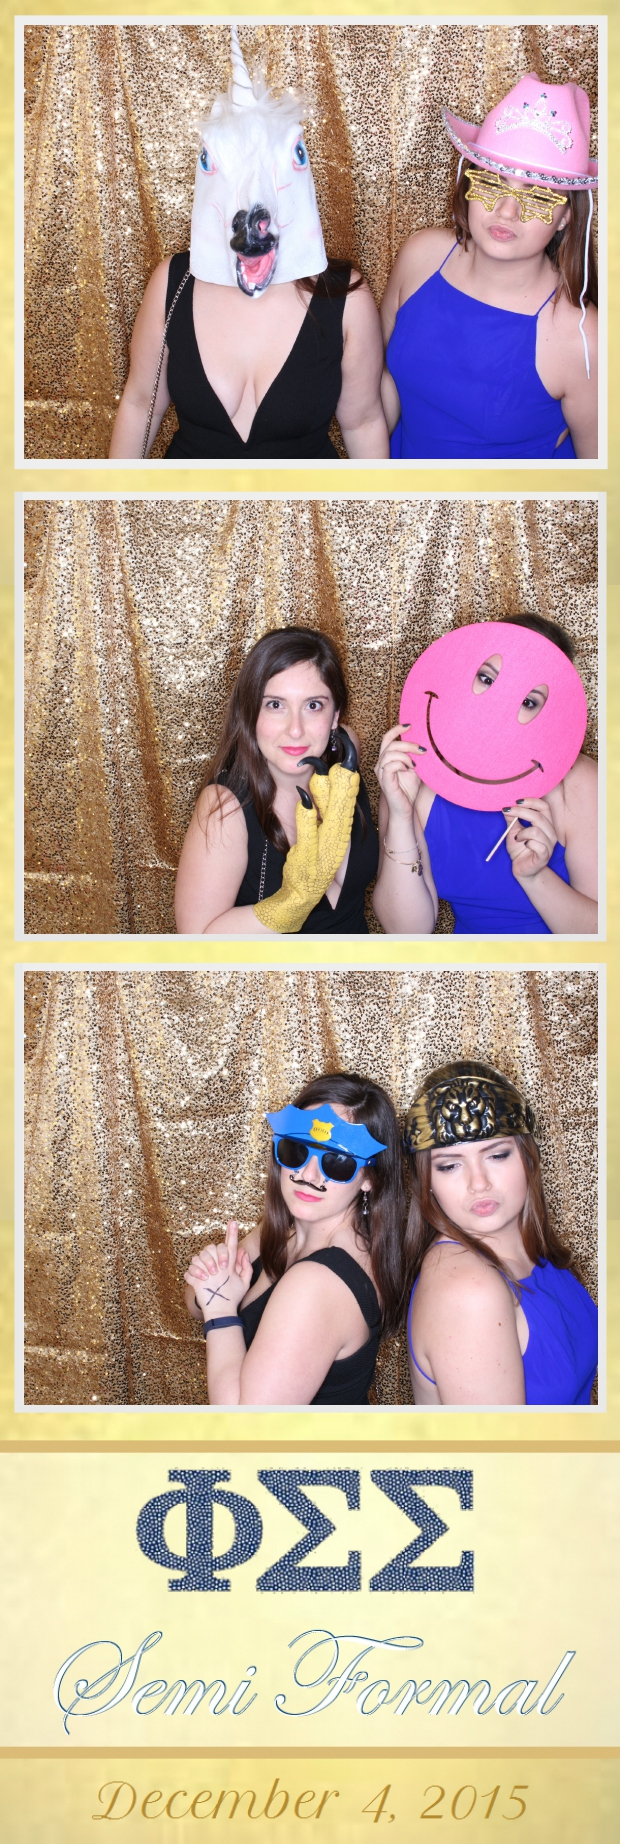 Guest House Events Photo Booth Phi Sigma Sigma Semi Formal (1).jpg